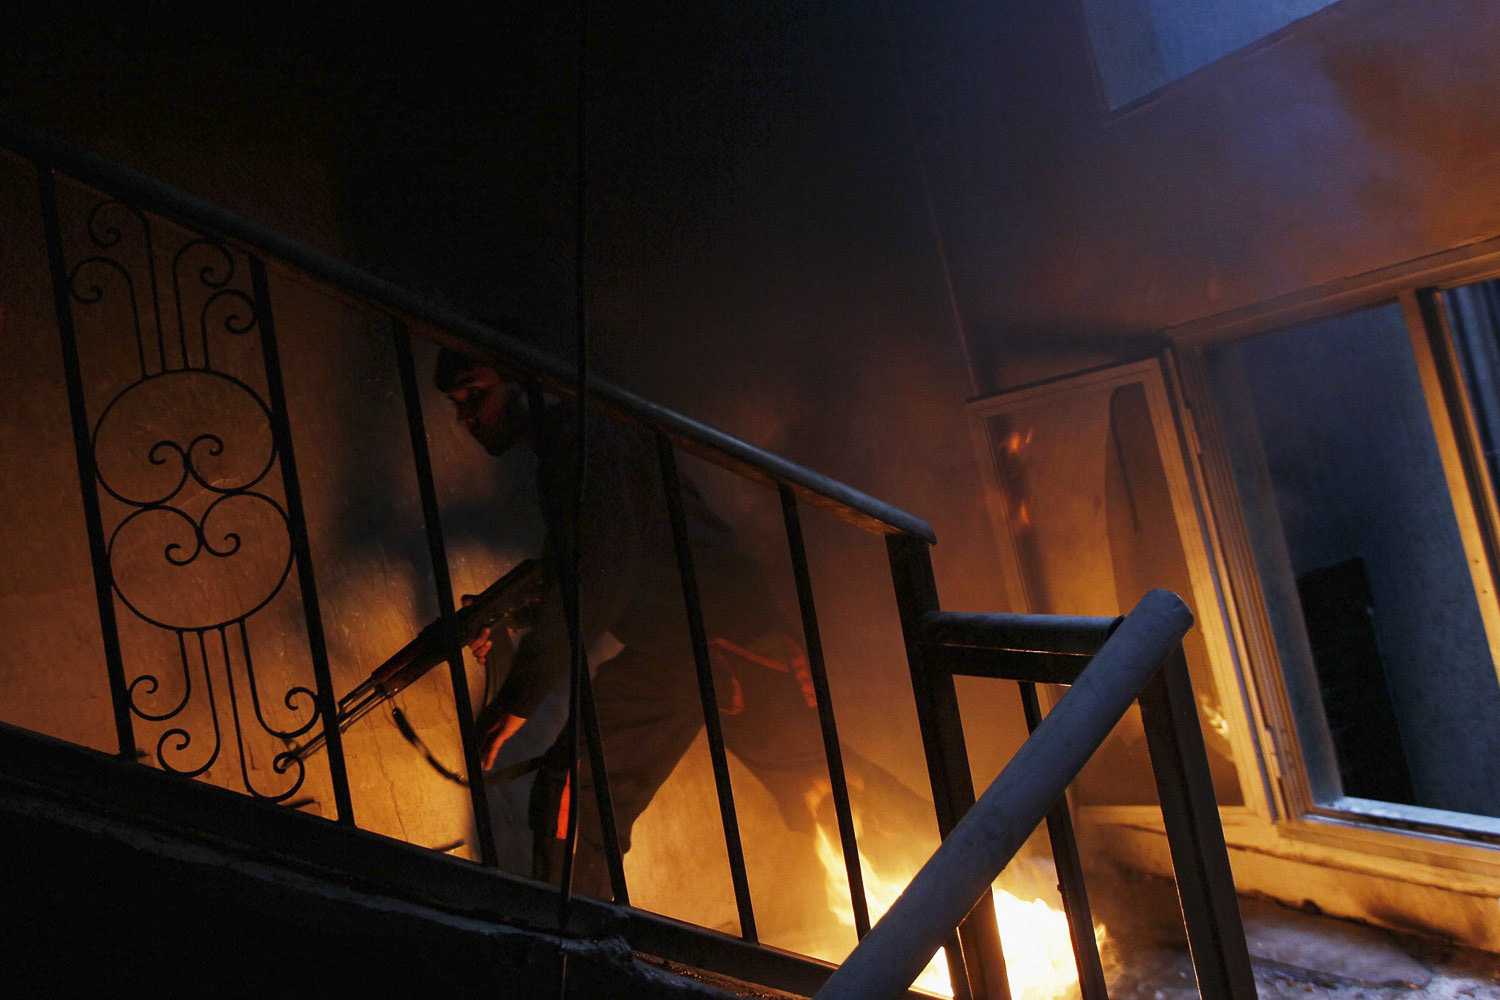 April 20, 2011. Chris Hondros photographed a rebel fighter braving a burning stairwell in pursuit of government troops while ensconced in a building on Tripoli Street in Misrata, Libya, on April 20. Later that day, Hondros and photographer Tim Hetherington were killed while covering the battle between the rebels and Gaddafi loyalists.